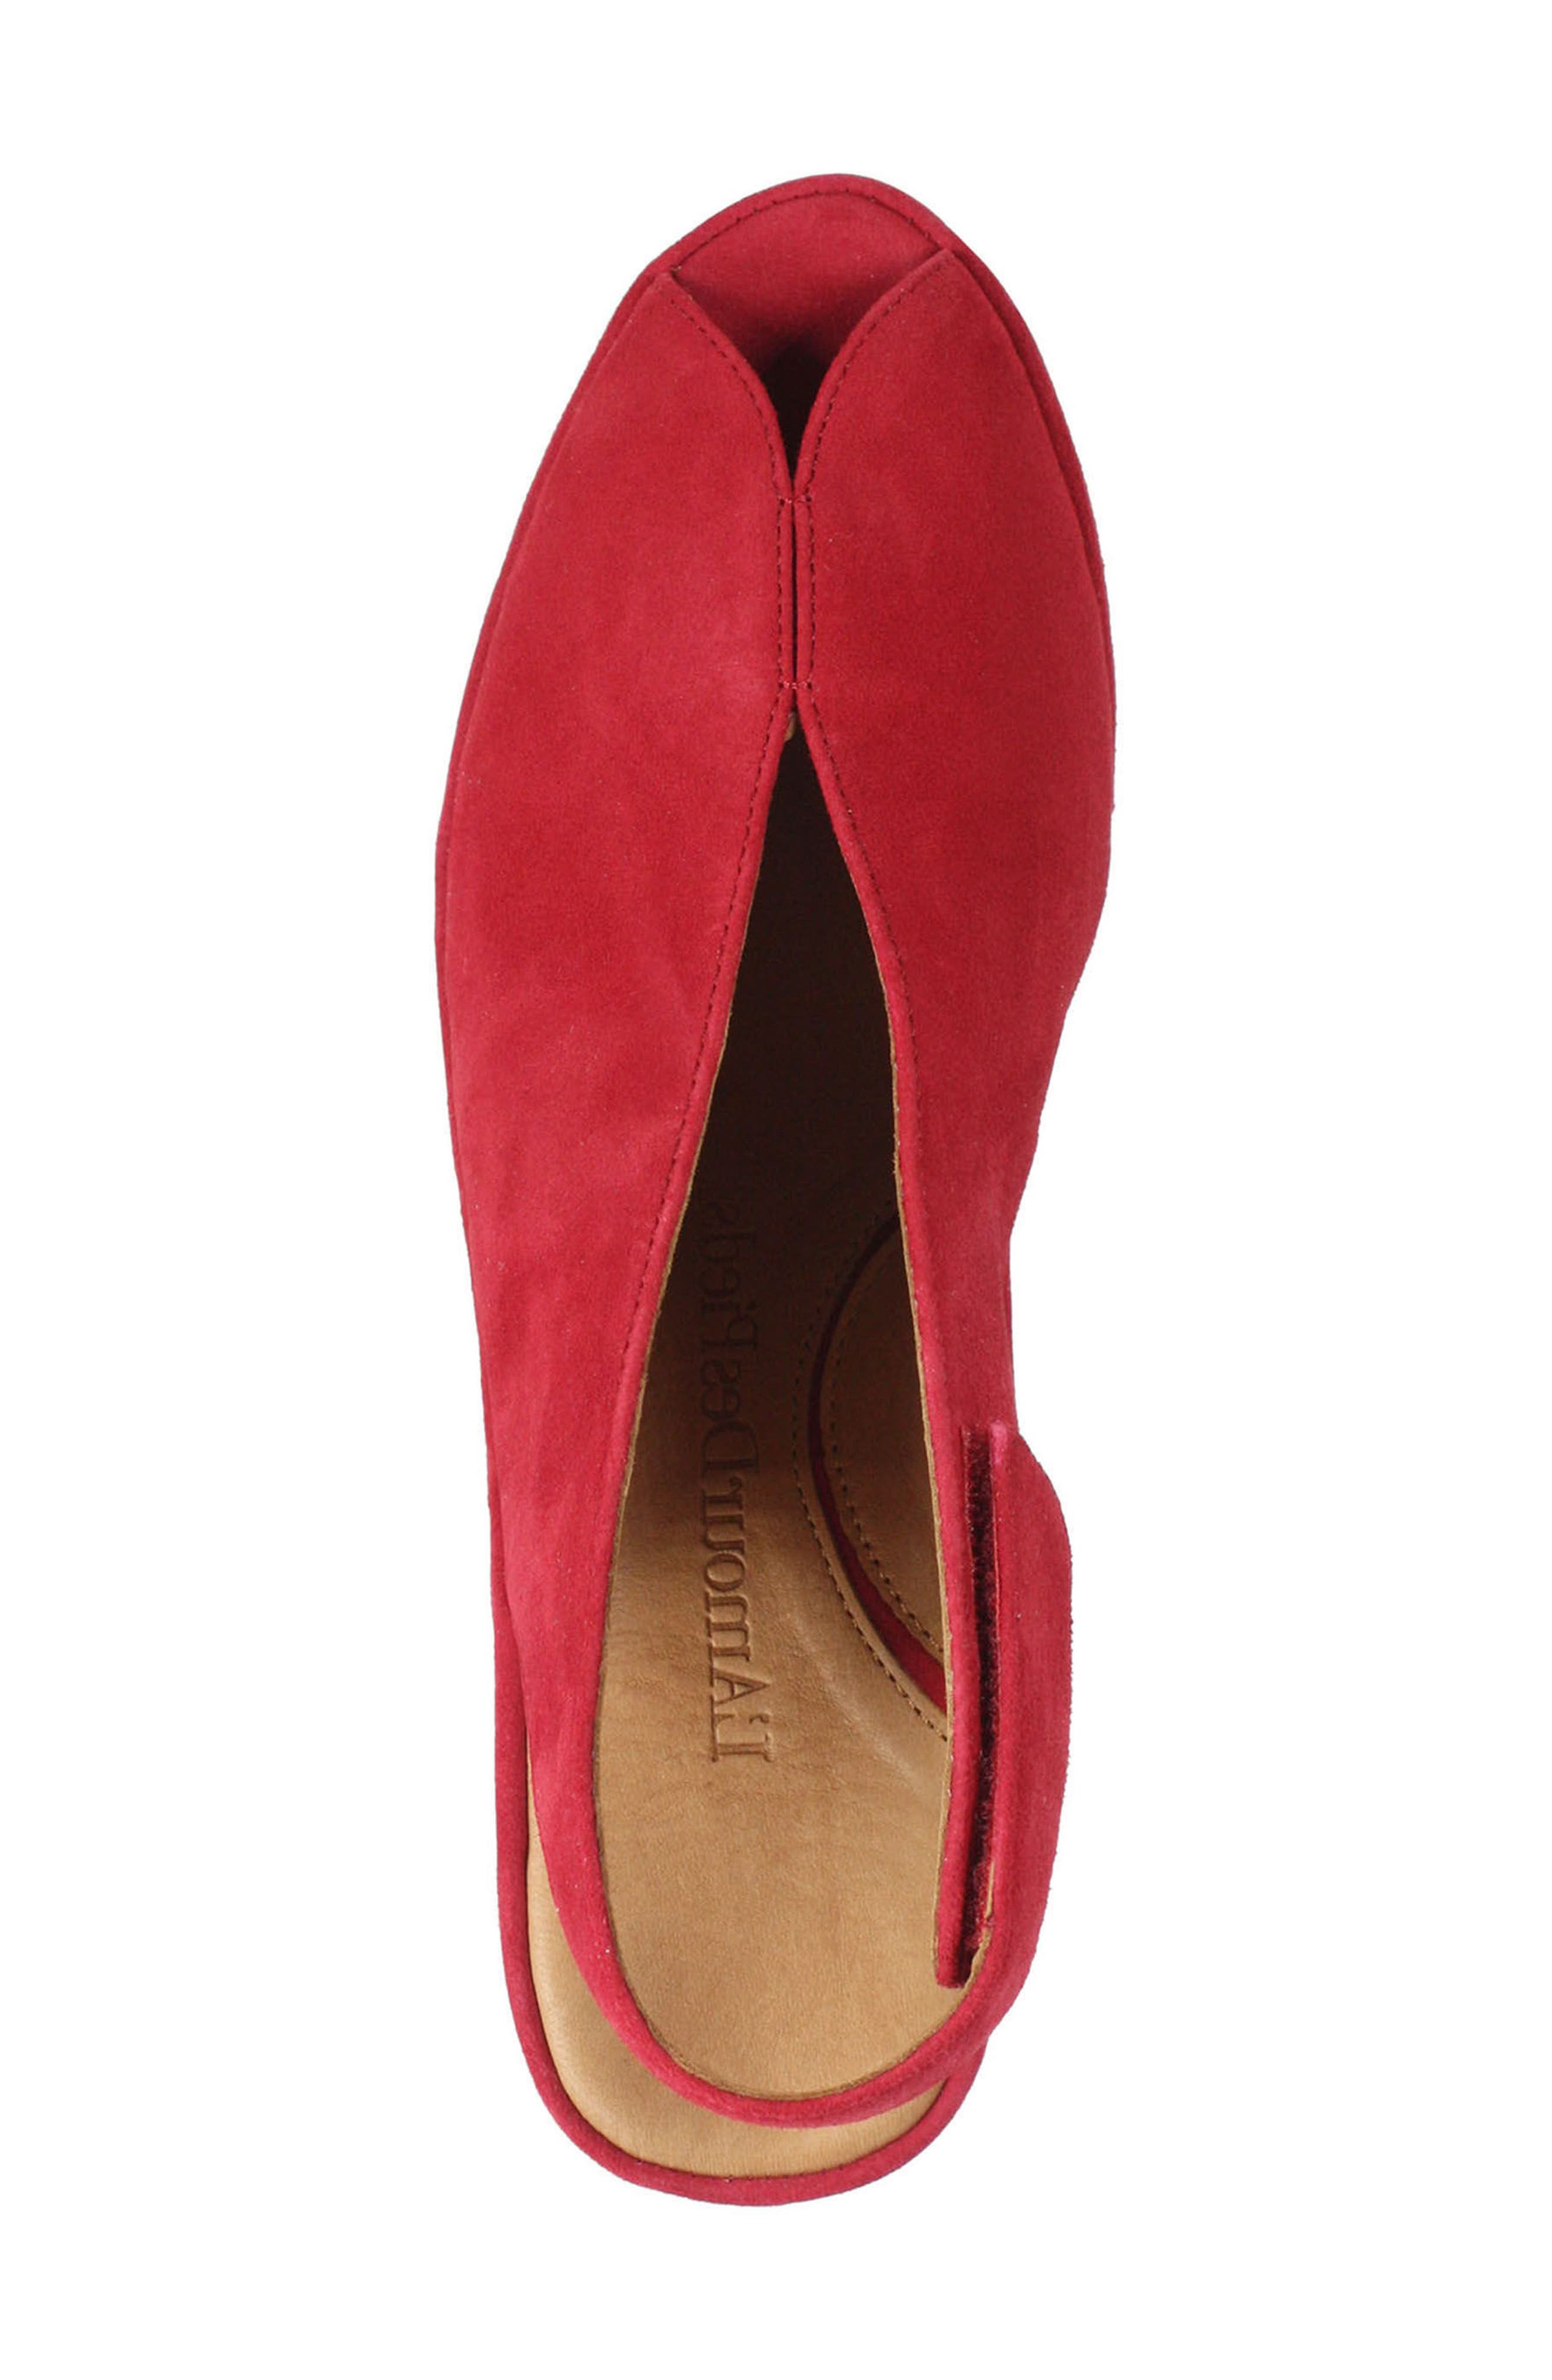 Odetta Slingback Wedge,                             Alternate thumbnail 5, color,                             Bright Red Suede